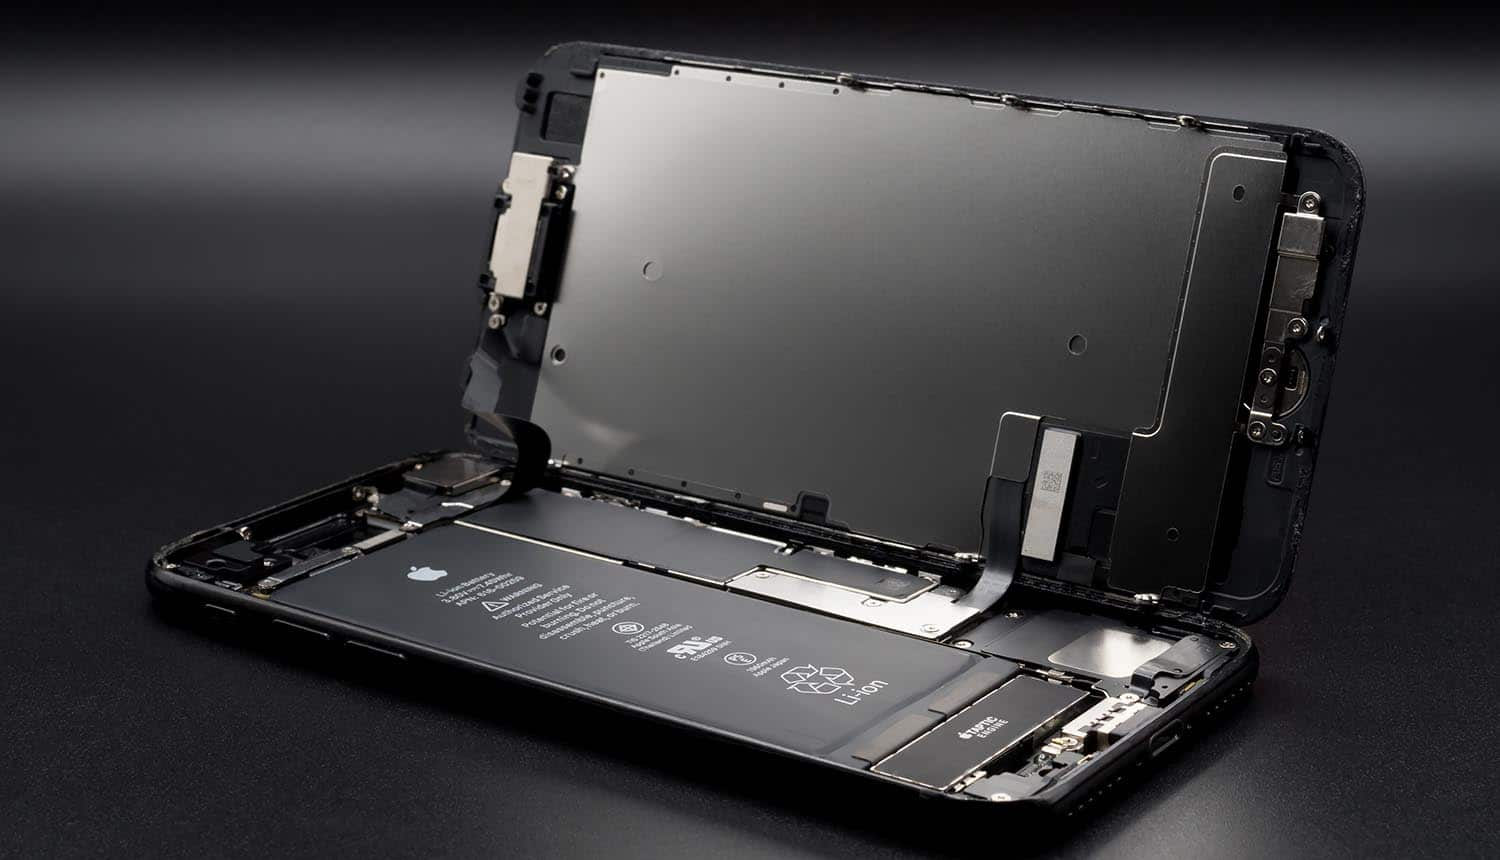 Disassembled iPhone showing the new un-patchable iPhone exploit that allows permanent jailbreak